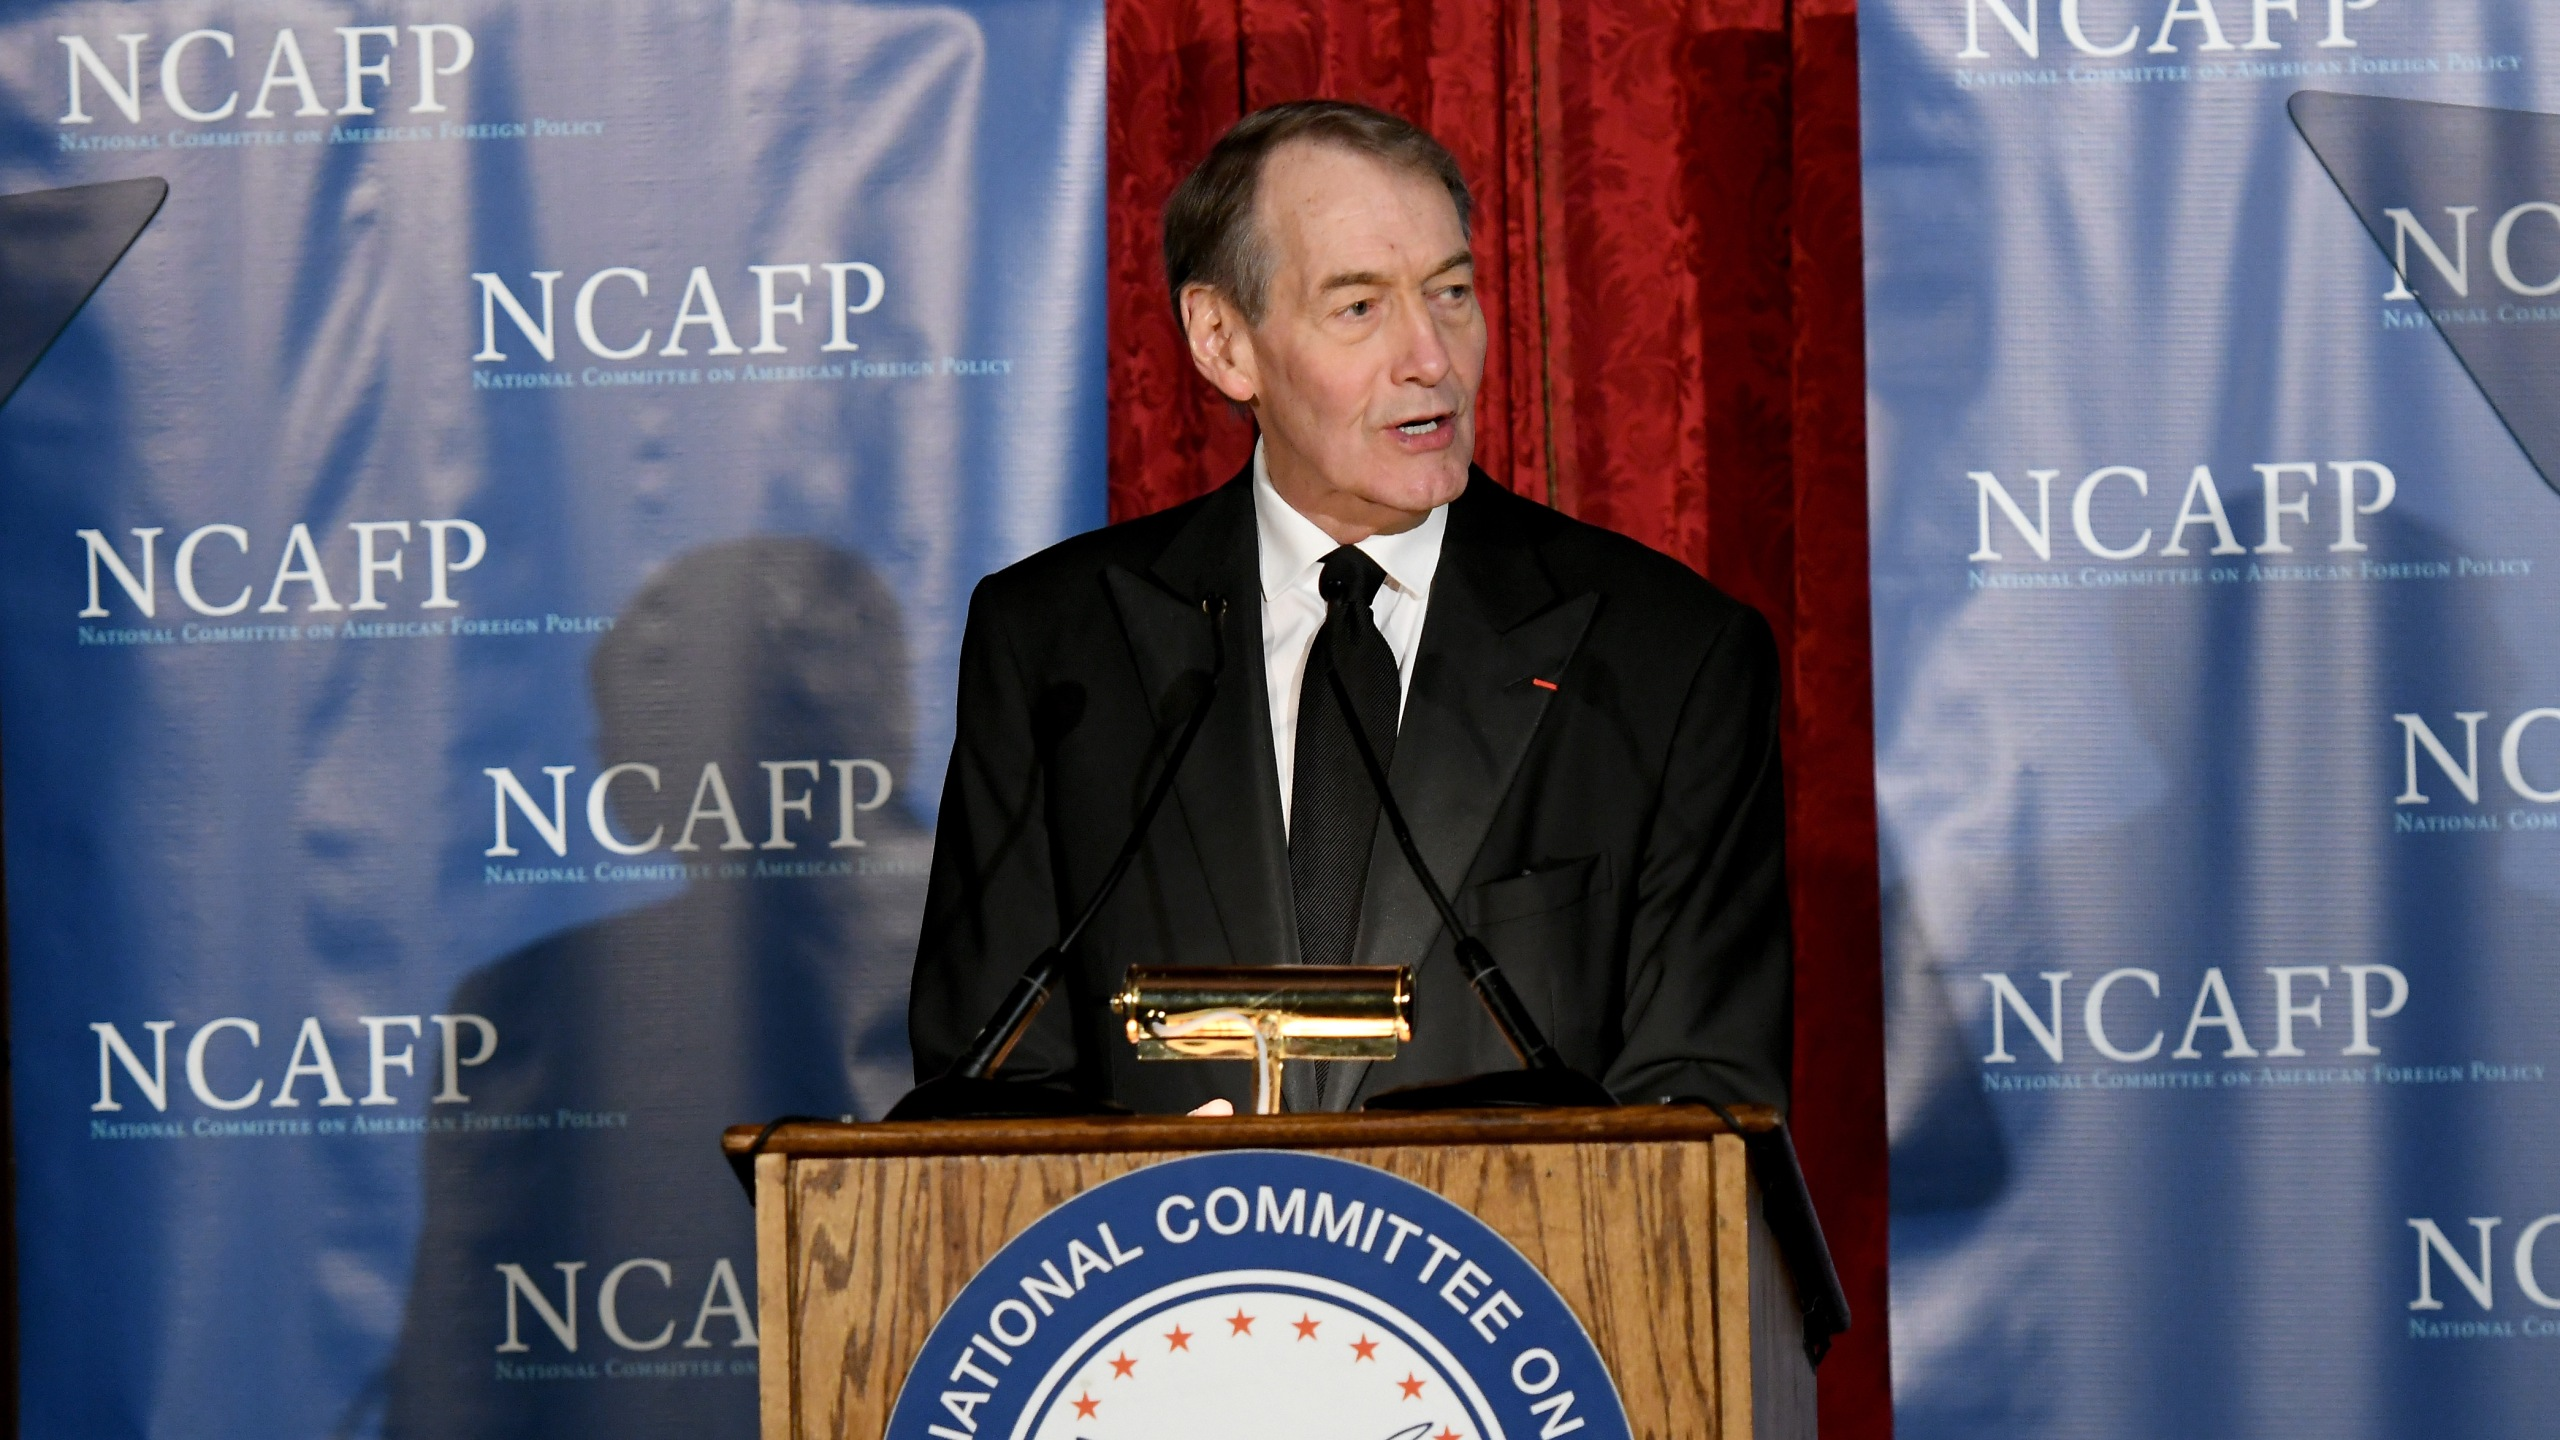 Charlie Rose hosts the National Committee On American Foreign Policy 2017 Gala Awards Dinner on October 30, 2017 in New York City. (Credit: Mike Coppola/Getty Images for National Committee on American Foreign Policy)